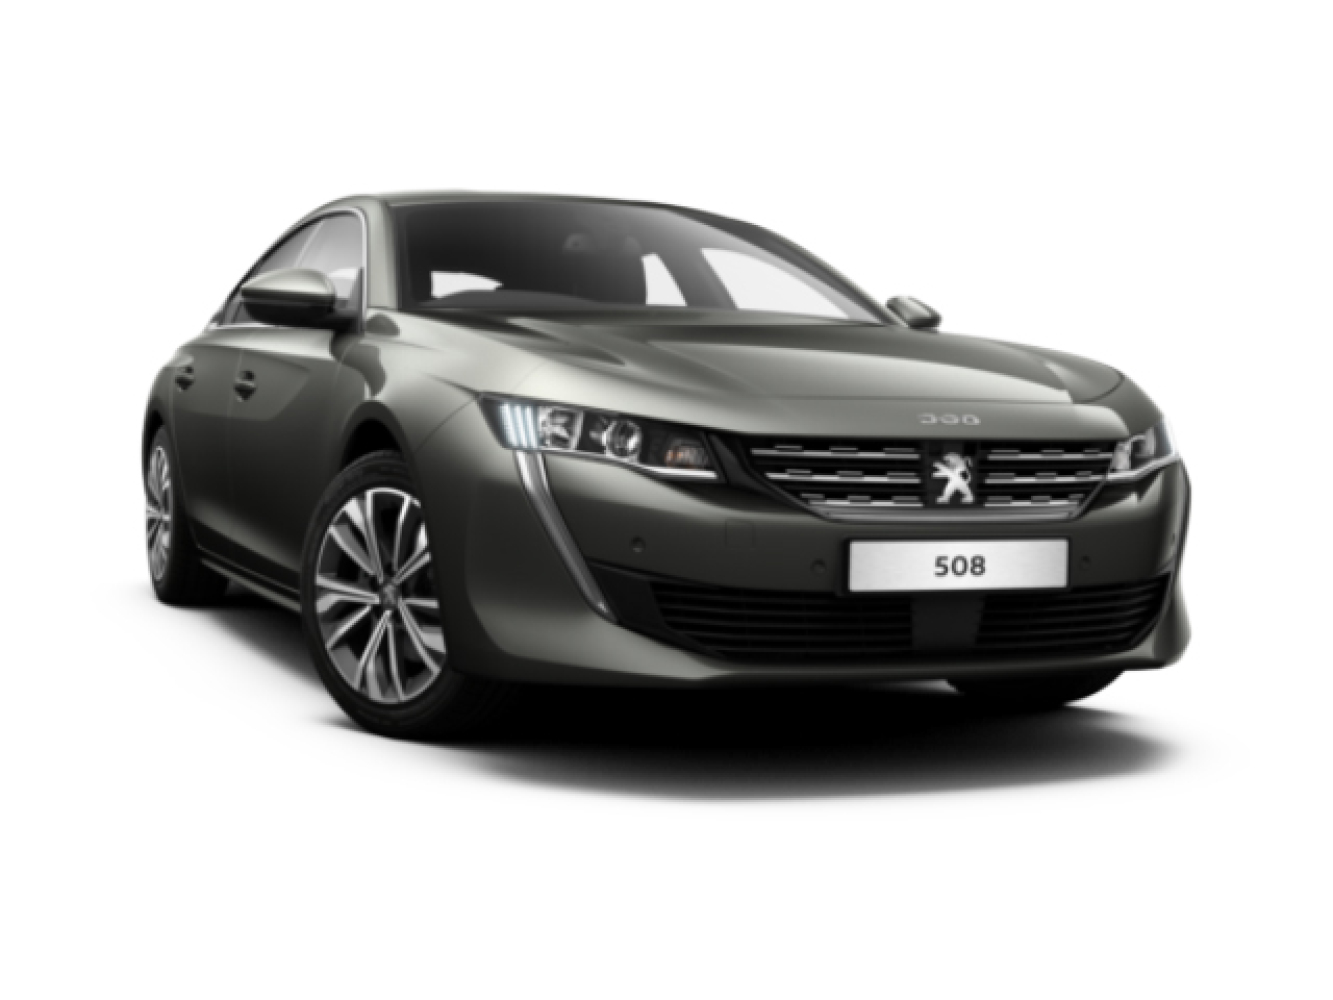 new peugeot 508 1 5 bluehdi allure 5dr diesel hatchback for sale bristol street. Black Bedroom Furniture Sets. Home Design Ideas